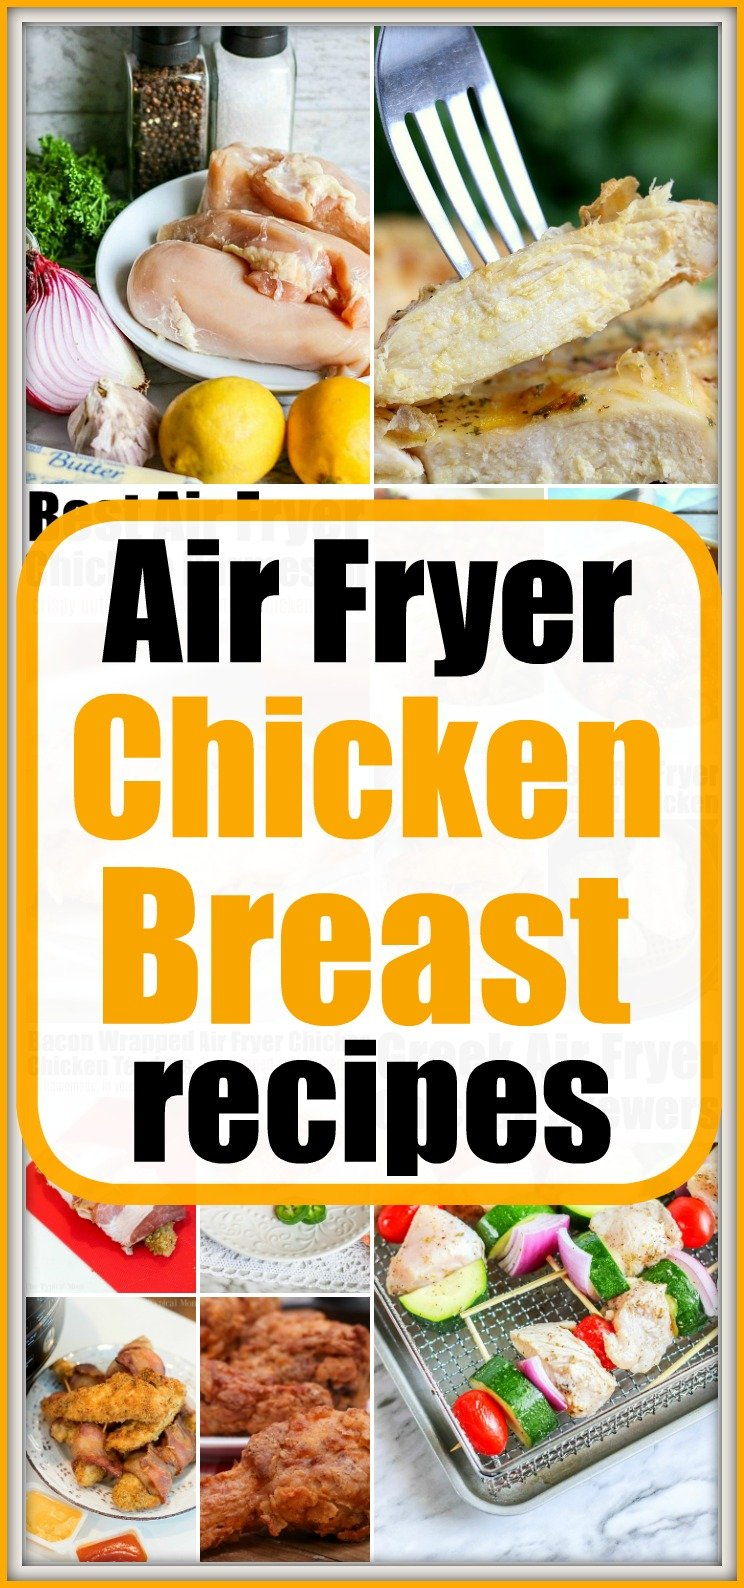 air fryer chicken breast recipes